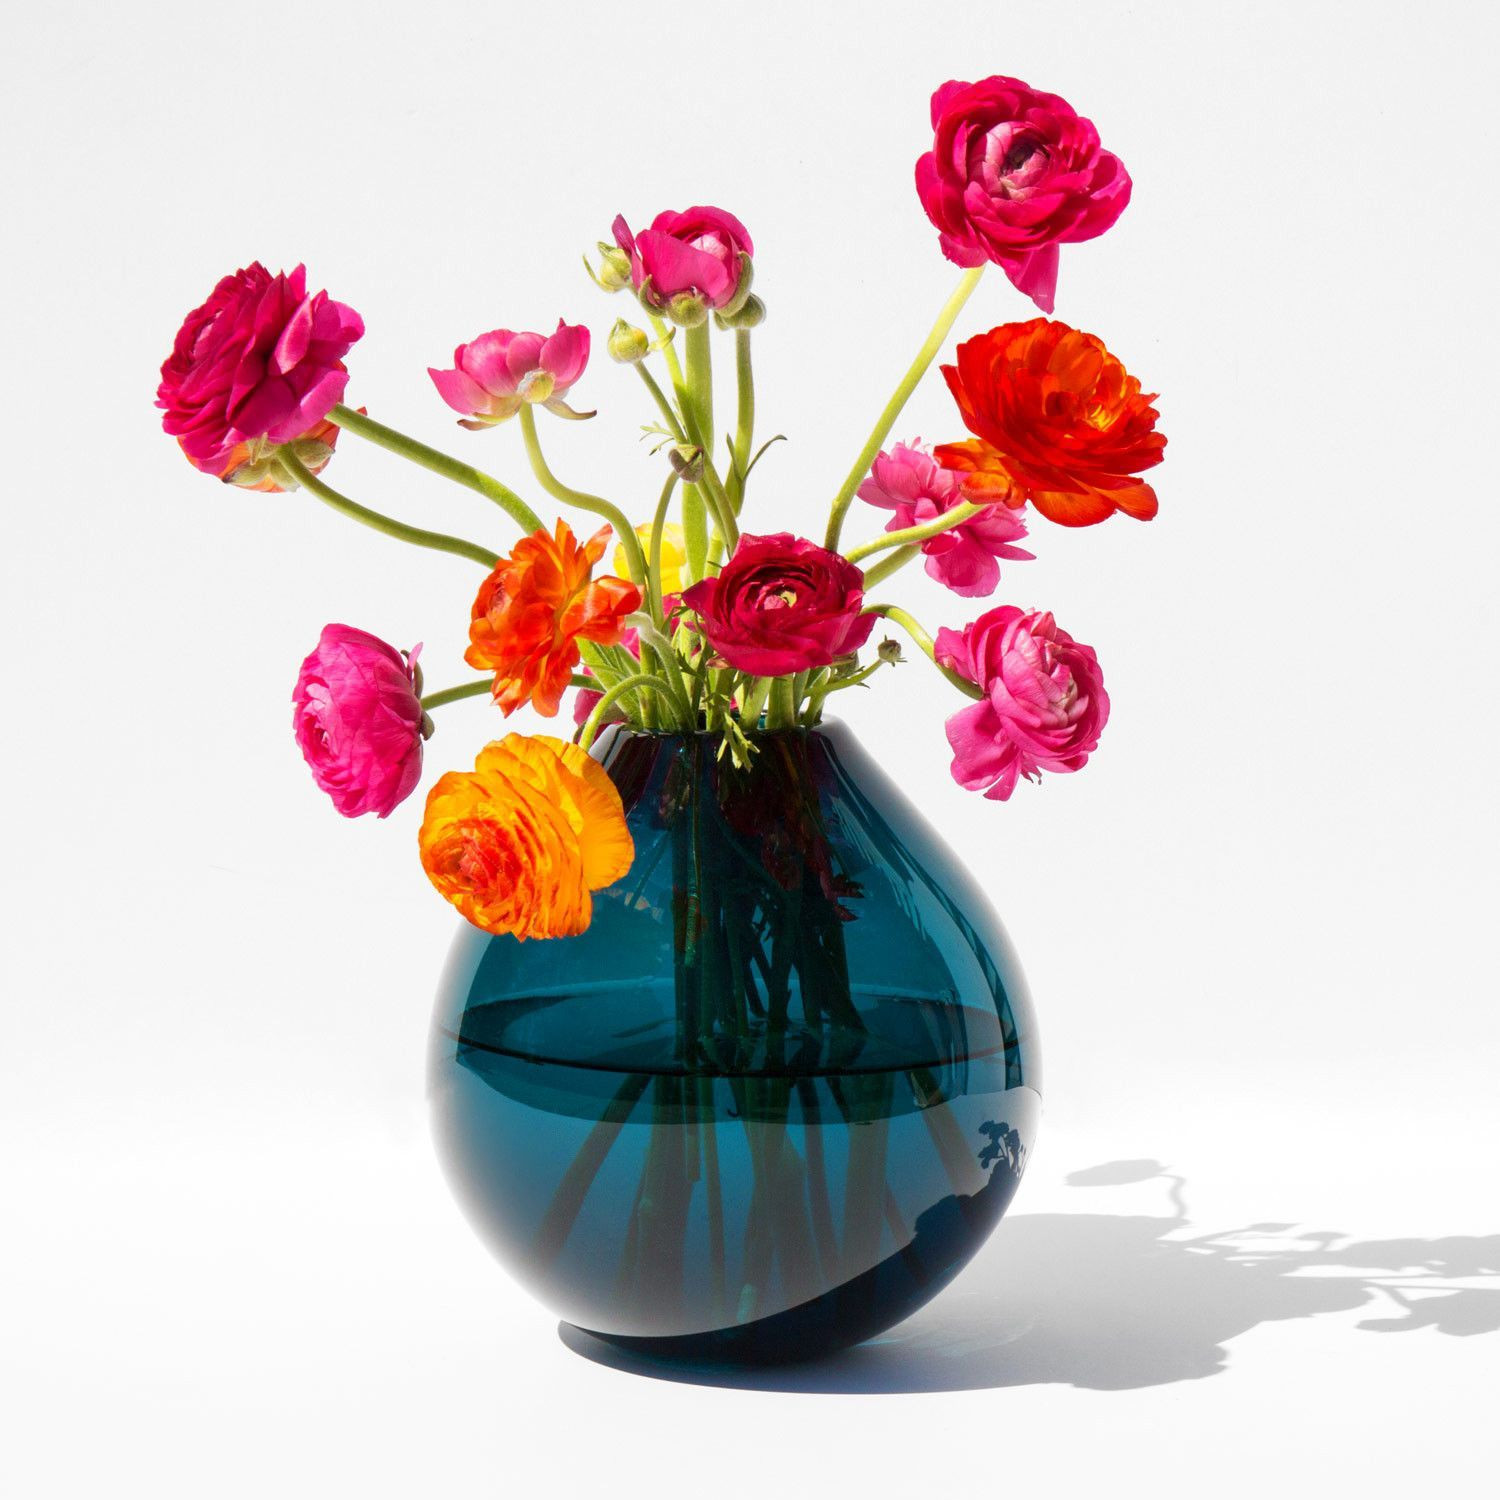 Glass Vase with Iron Stand Of Samuji Koti Mouth Blown Drop Glass Vase for the Home Pinterest with Samuji Koji Mouth Blown Drop Glass Vase Kindred Black